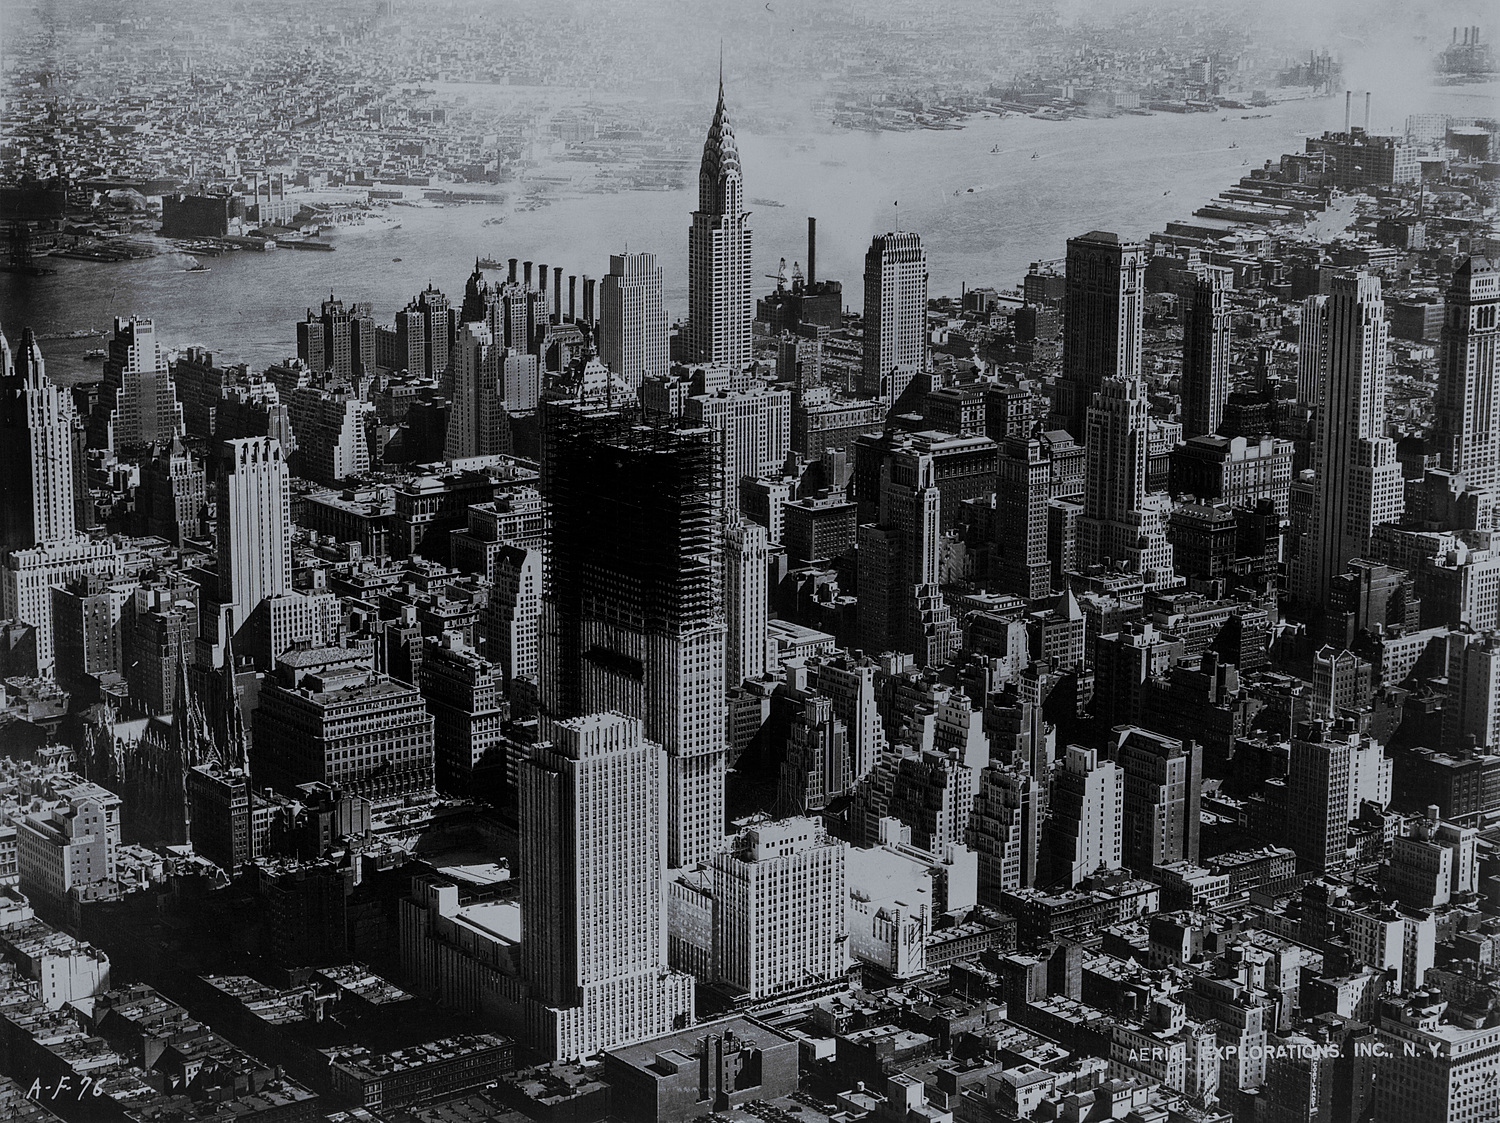 Rockefeller Center under construction, New York City, 1932 | Rockefeller Center rises in mid-Manhattan. Photograph by Hamilton M. Wright for Aerial Explorations, Inc., N.Y., 1932.